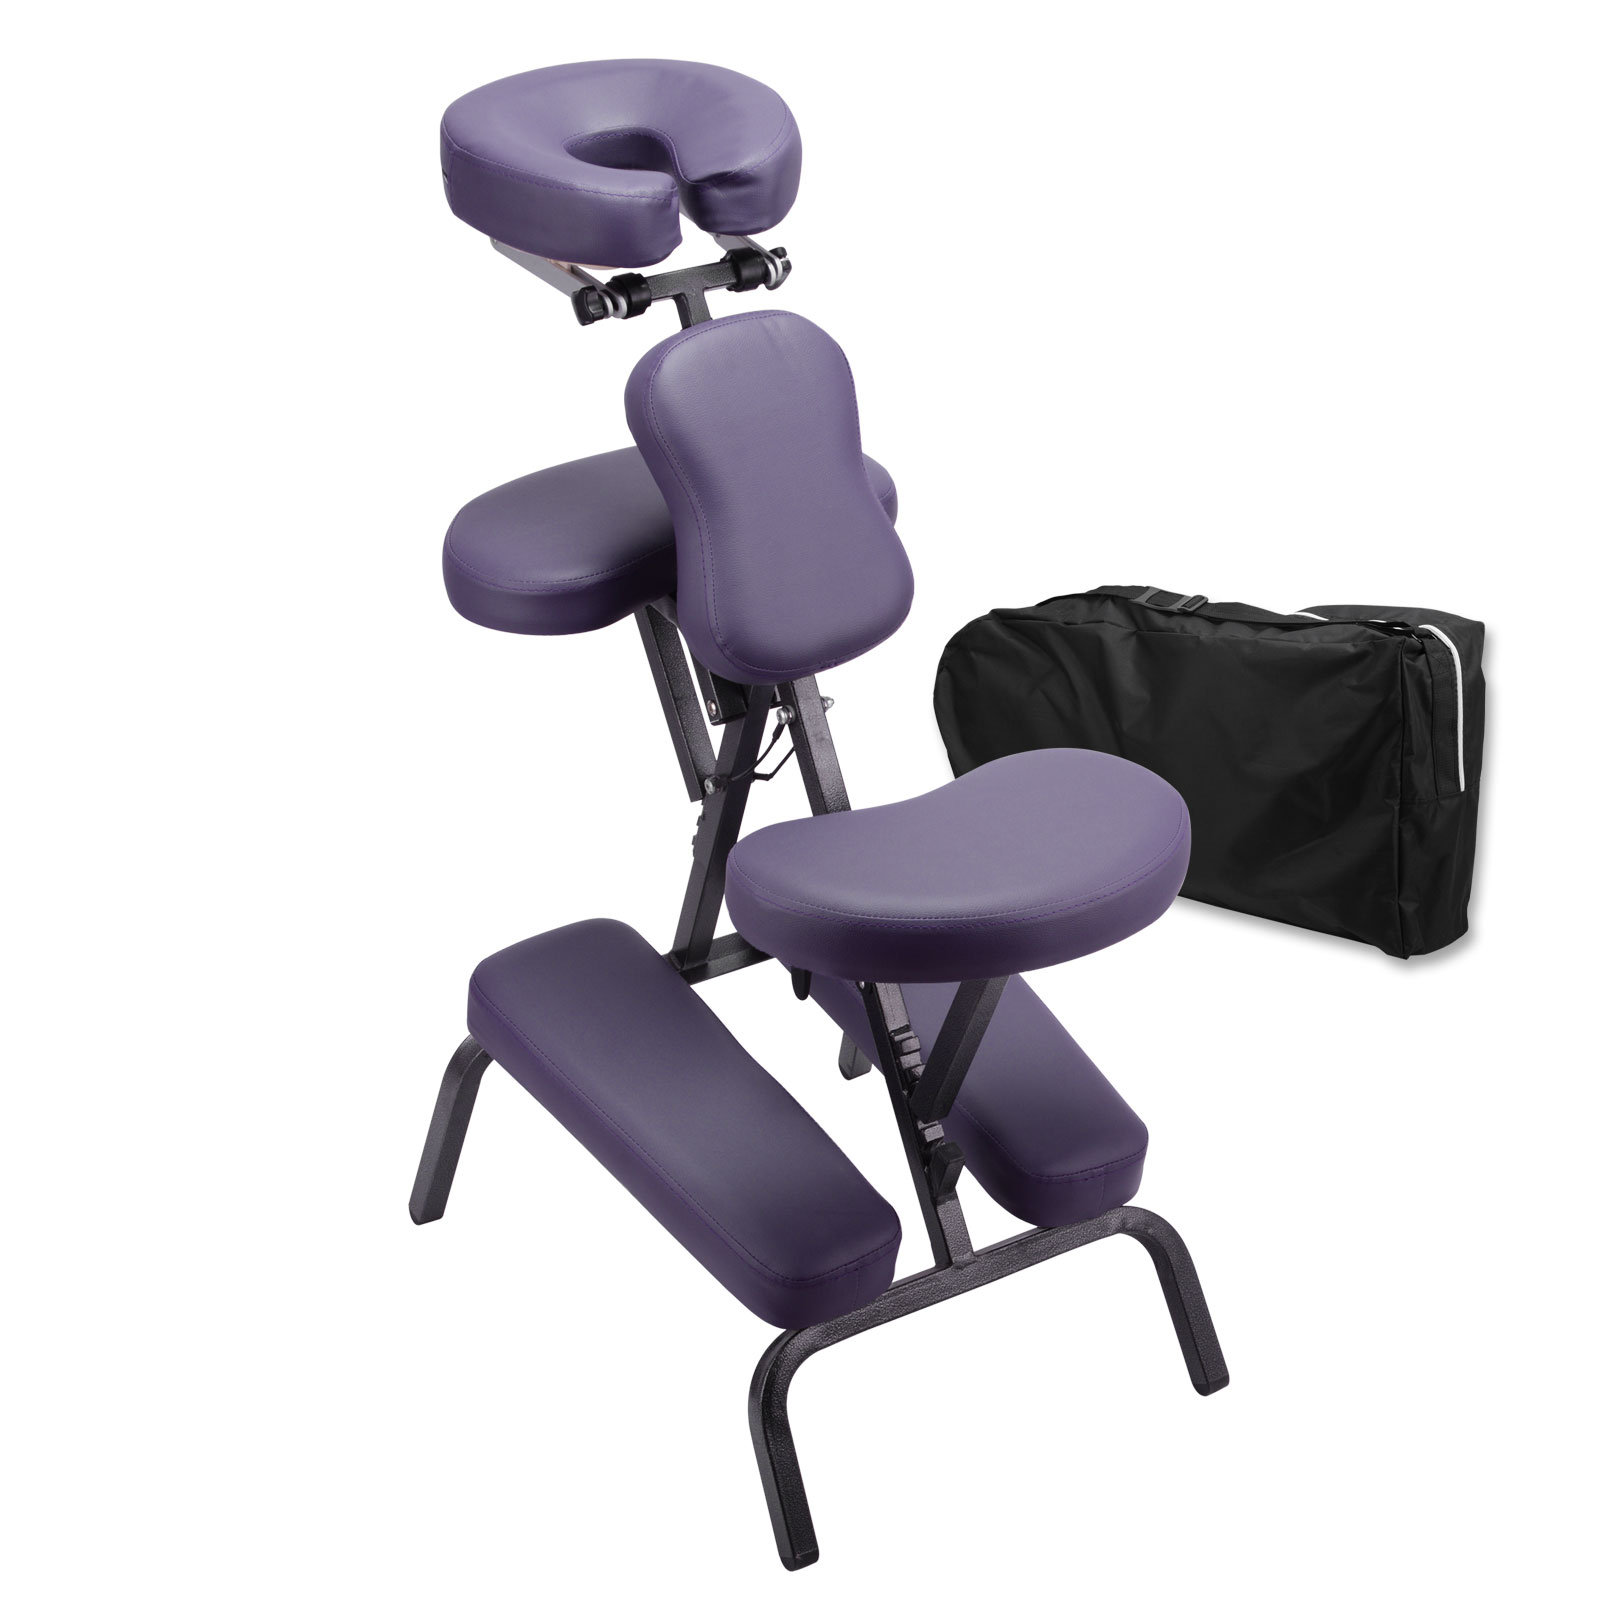 Portable foldable stool indian head massage chair office couch beauty ebay - Portable reflexology chair ...